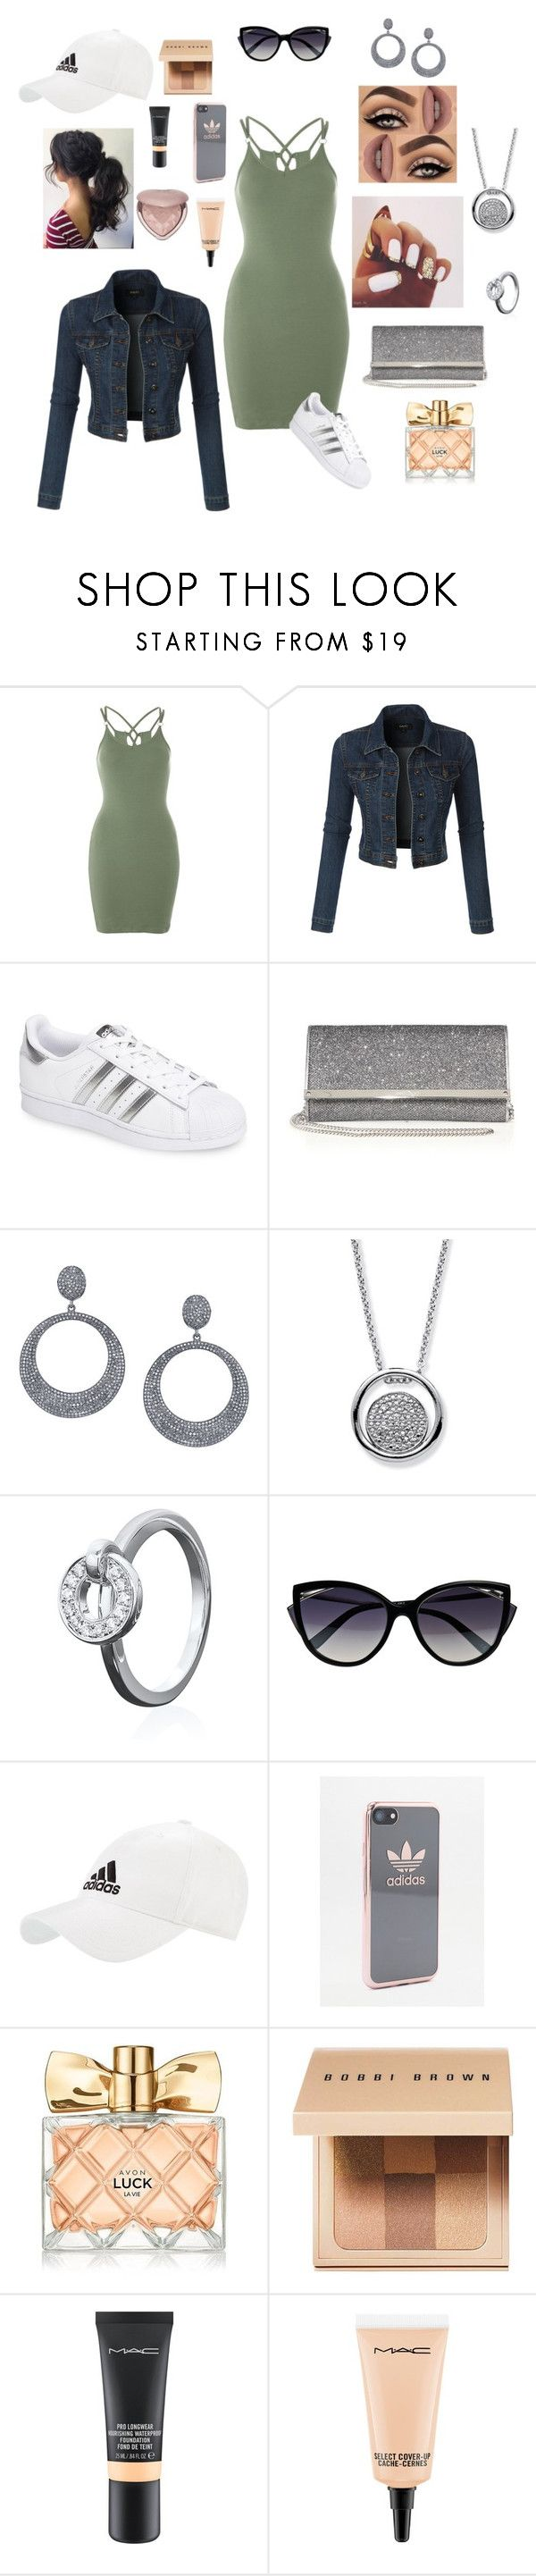 """Night Owl 🦉"" by krystal-love27 ❤ liked on Polyvore featuring Topshop, LE3NO, adidas, Jimmy Choo, Sheryl Lowe, Palm Beach Jewelry, Boodles, La Perla, Lime Crime and Avon"